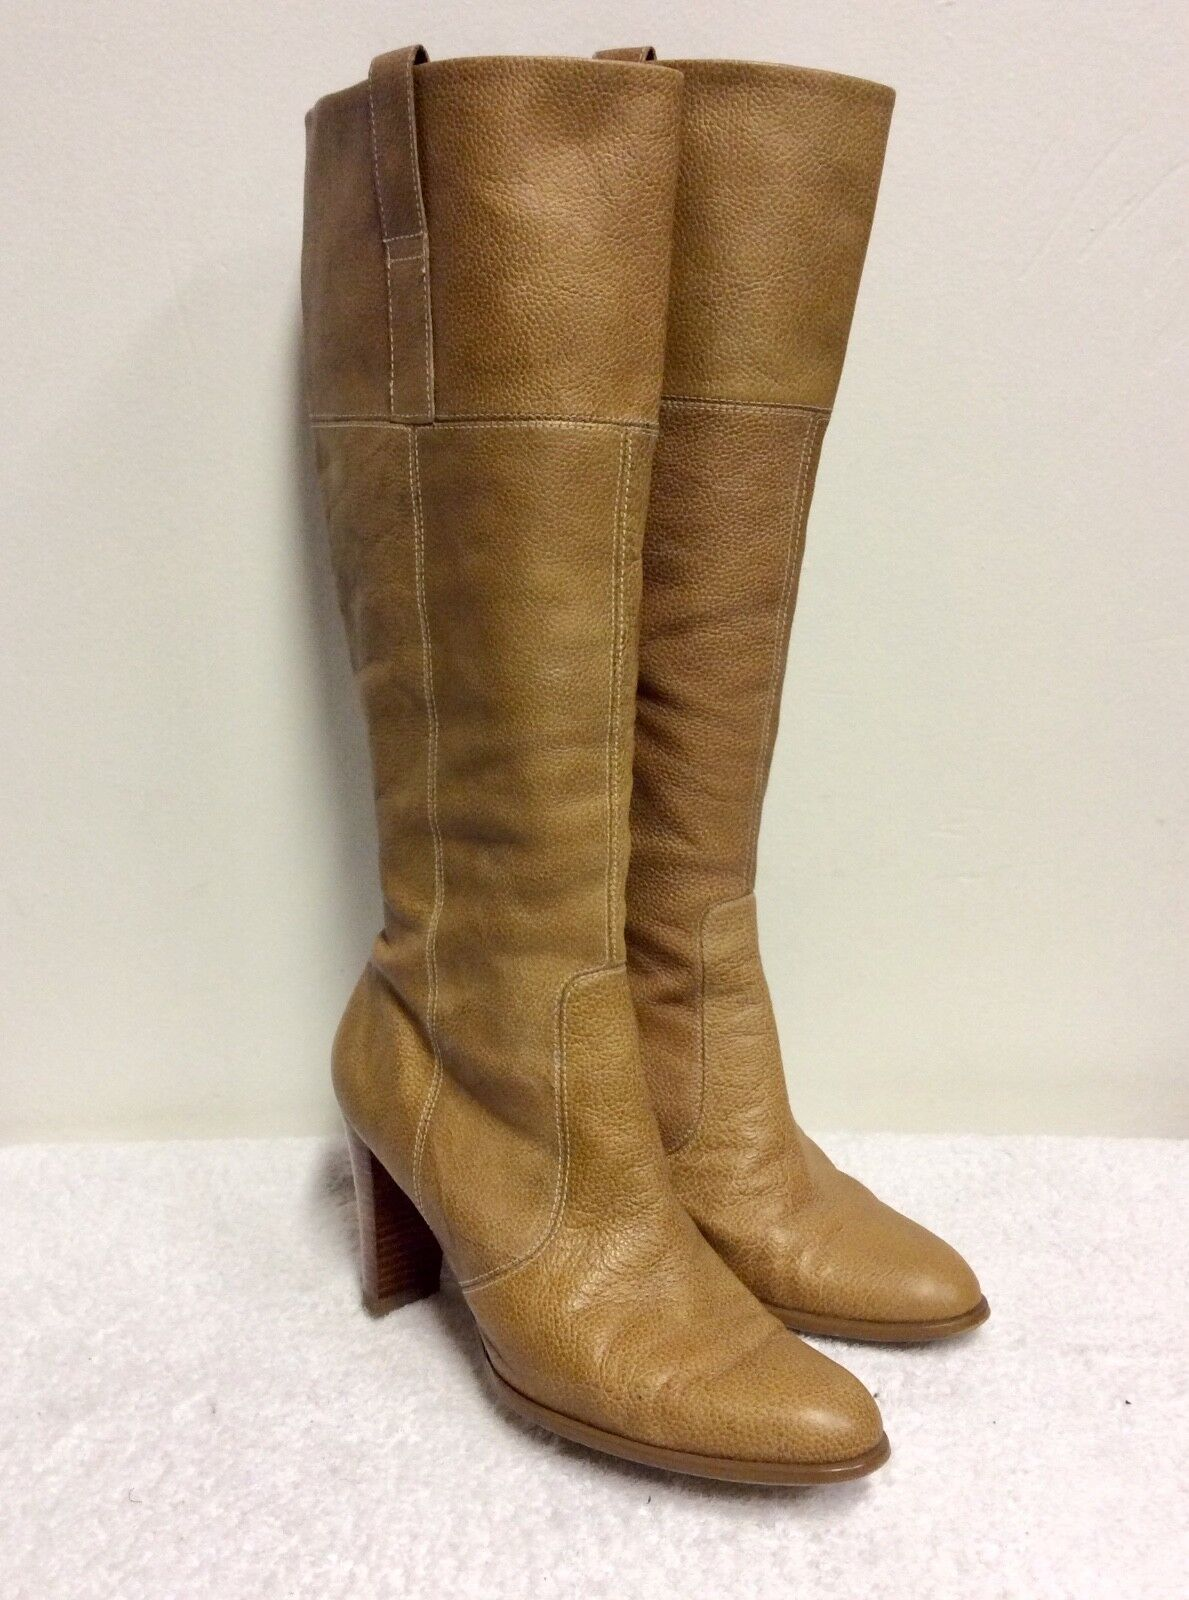 MARKS & SPENCER CAMEL TAN LEATHER KNEE LENGTH BOOTS SIZE 7 40.5